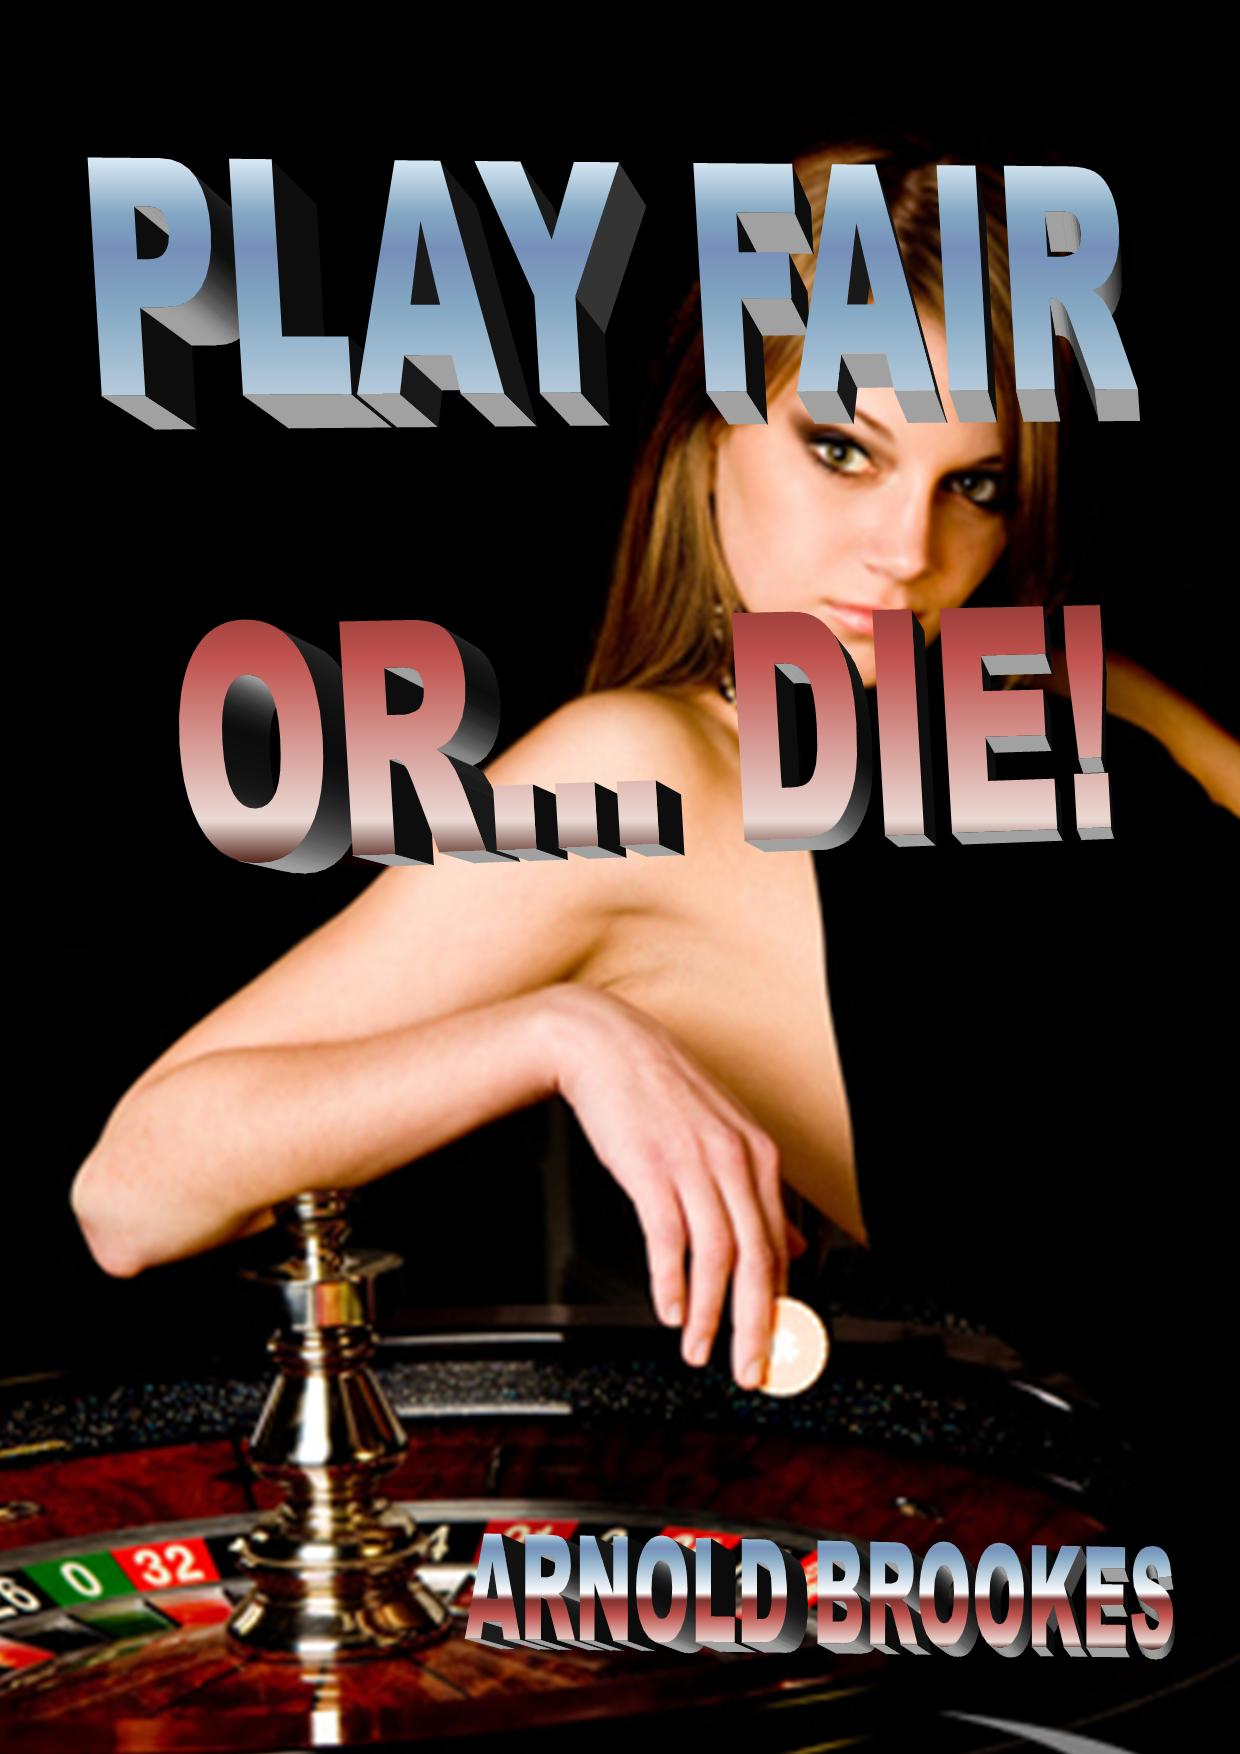 PLAY FAIR or DIE!